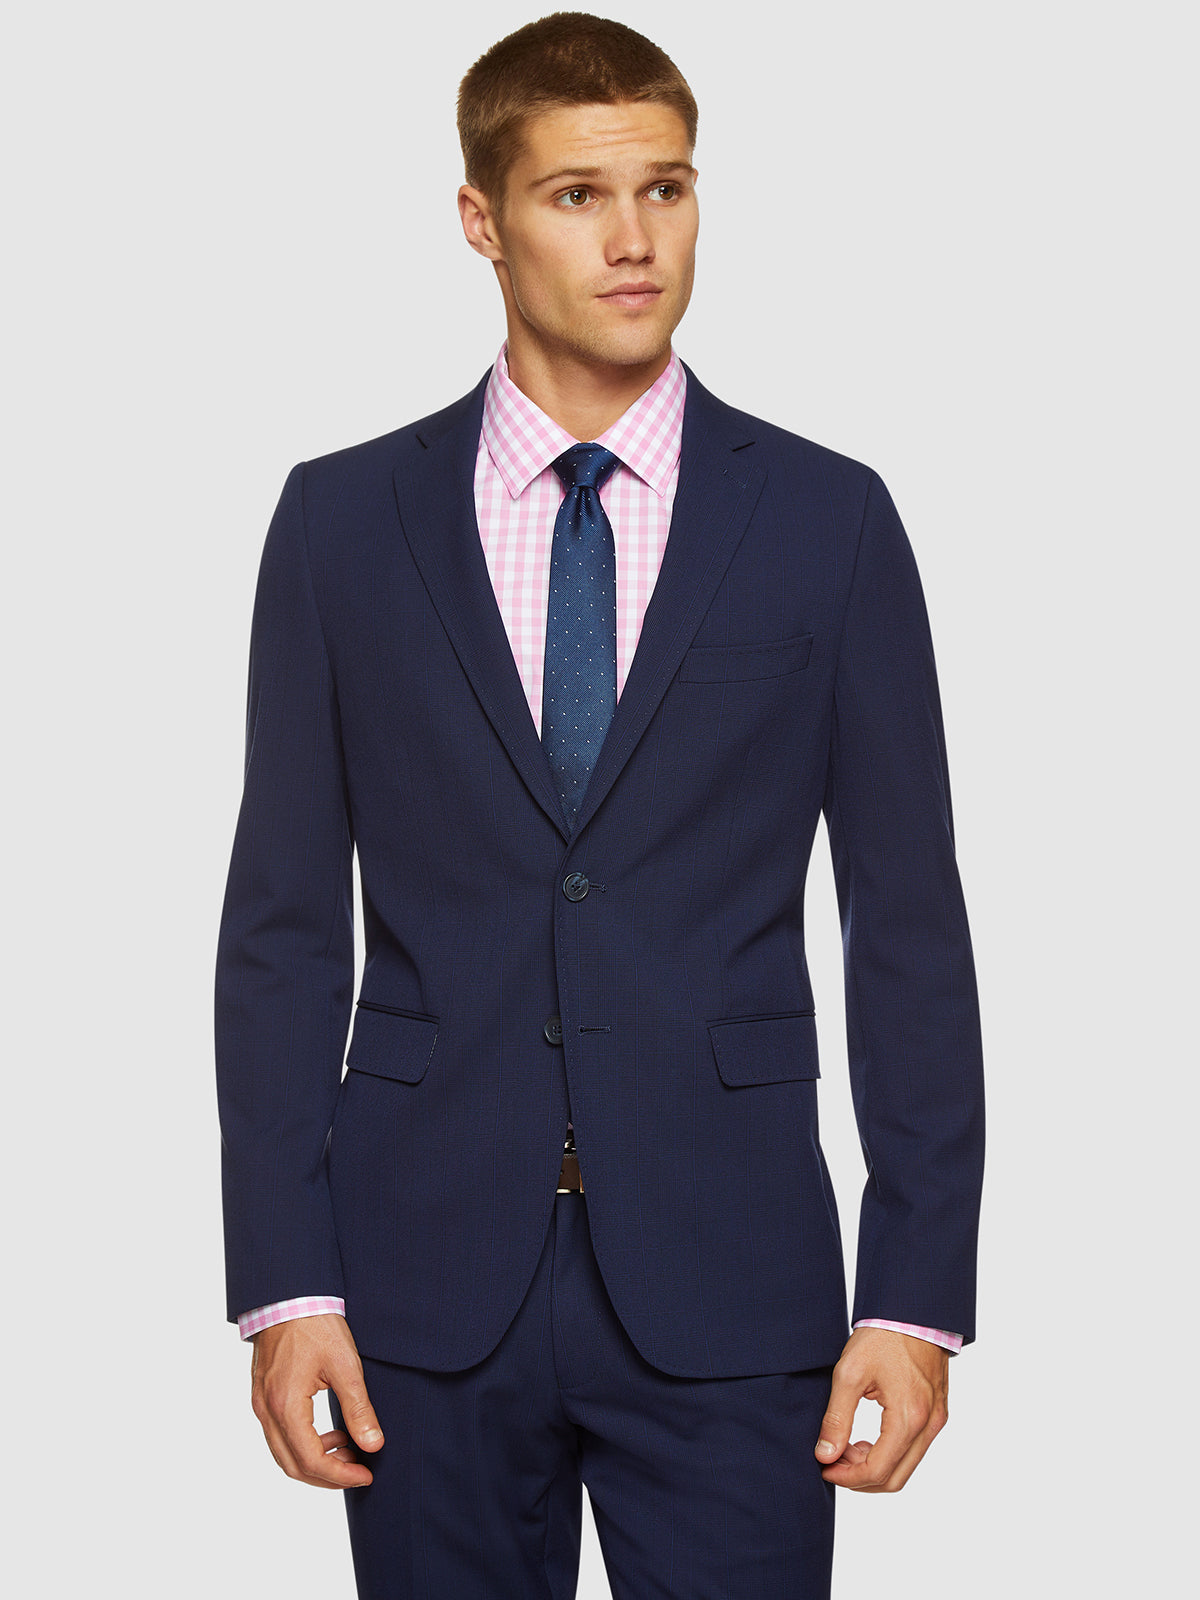 AUDEN ECO CHECKED SUIT JACKET NAVY